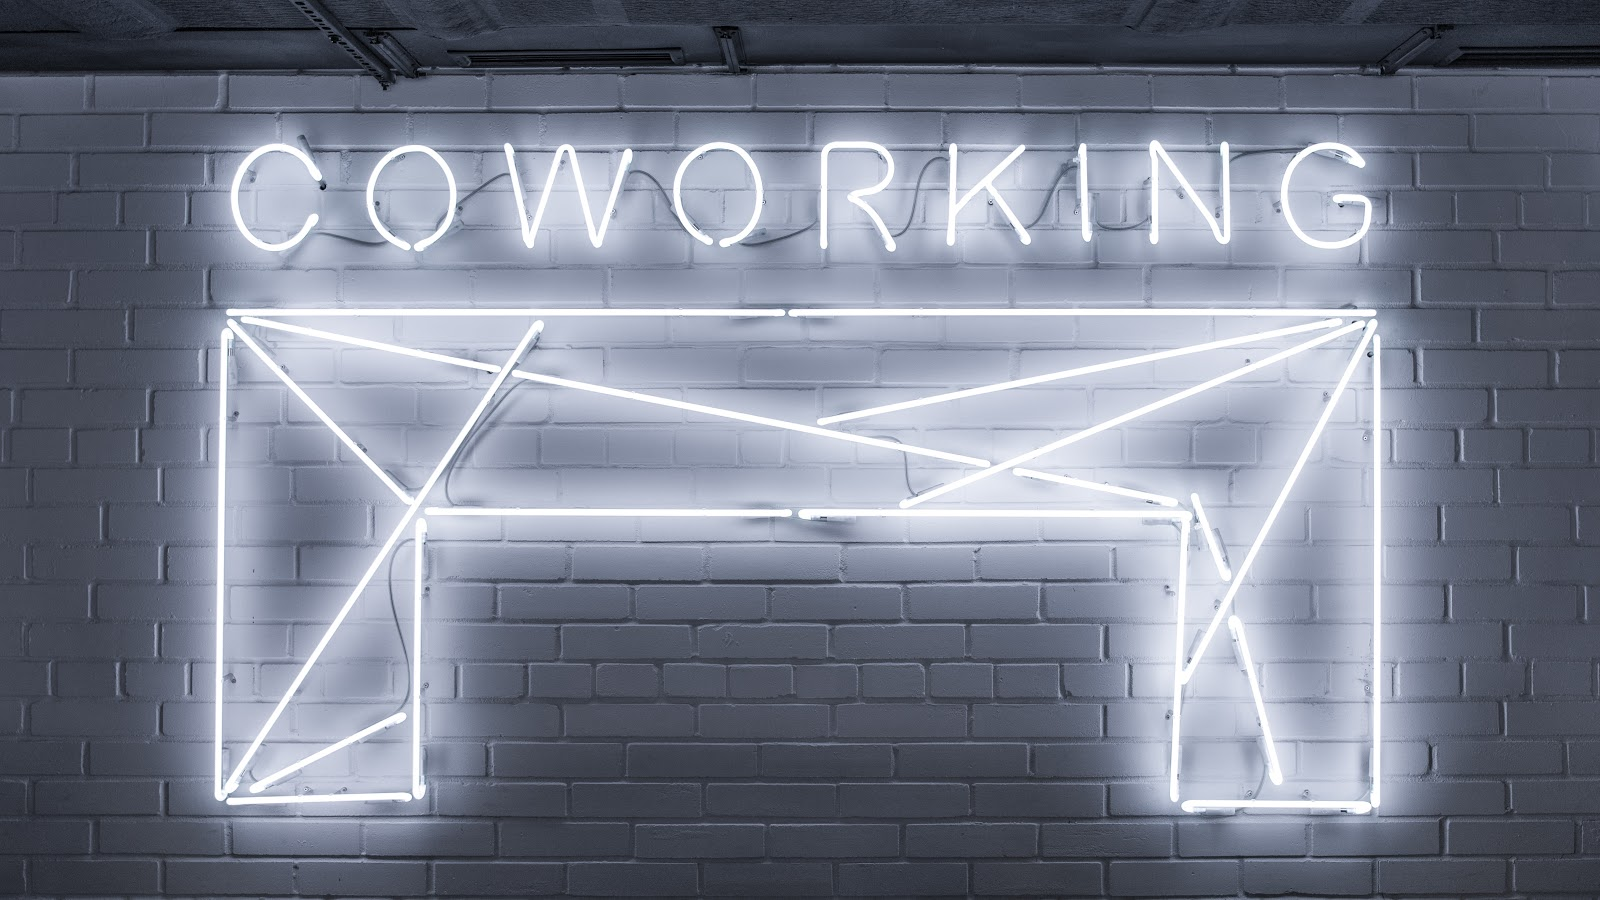 """Neon sign that says """"Coworking""""."""